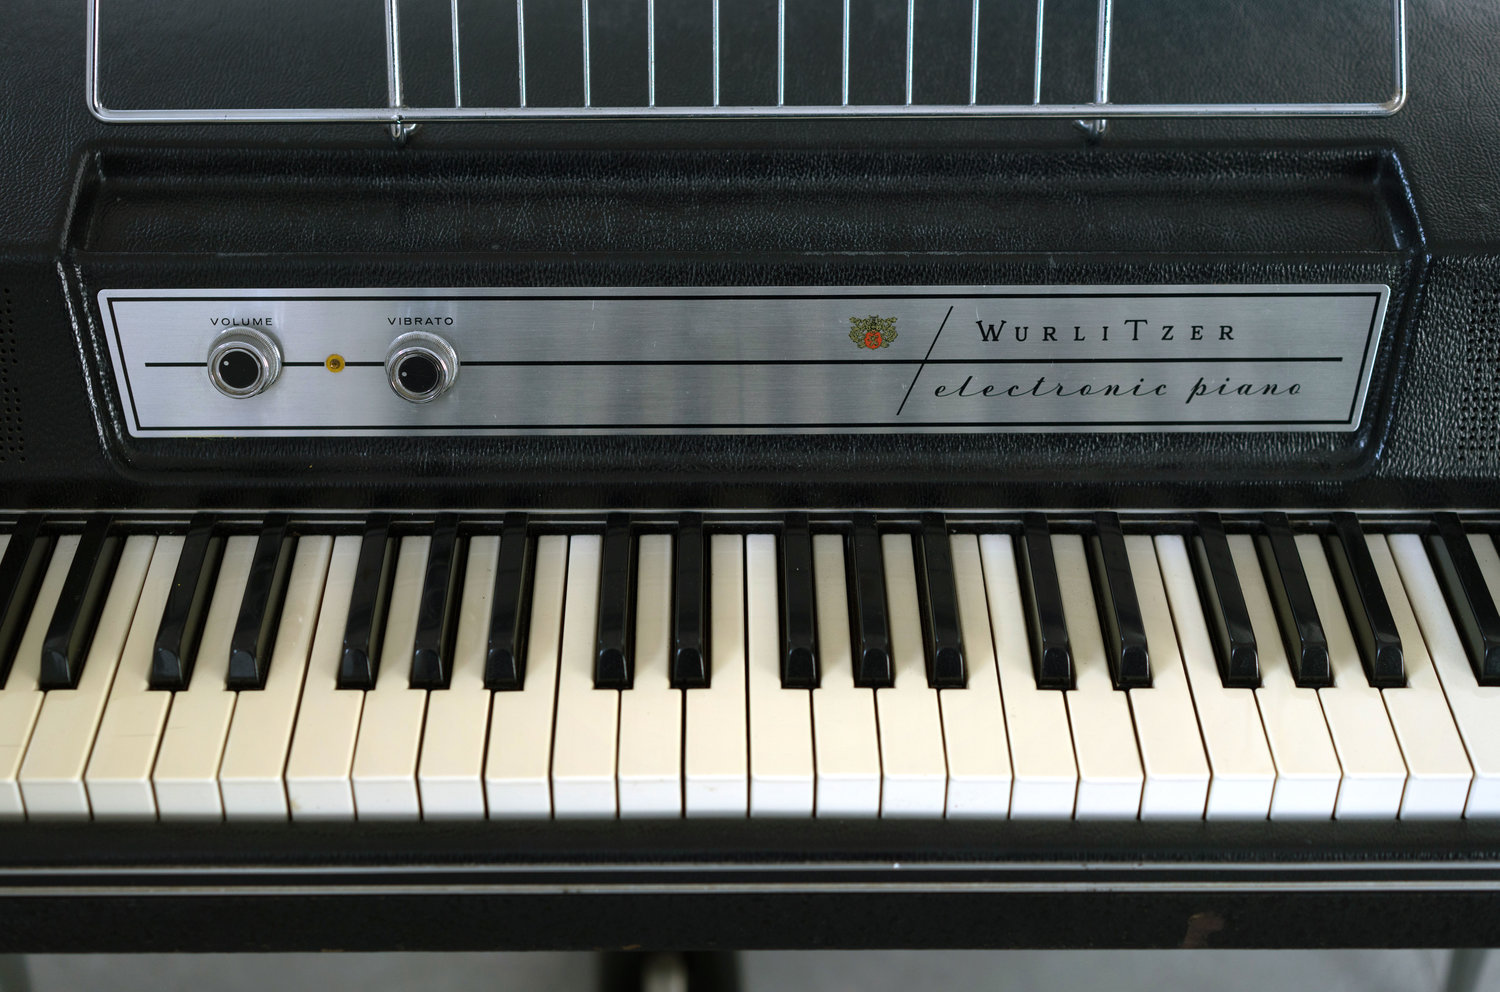 Differences Between the Wurlitzer 200 & 200a